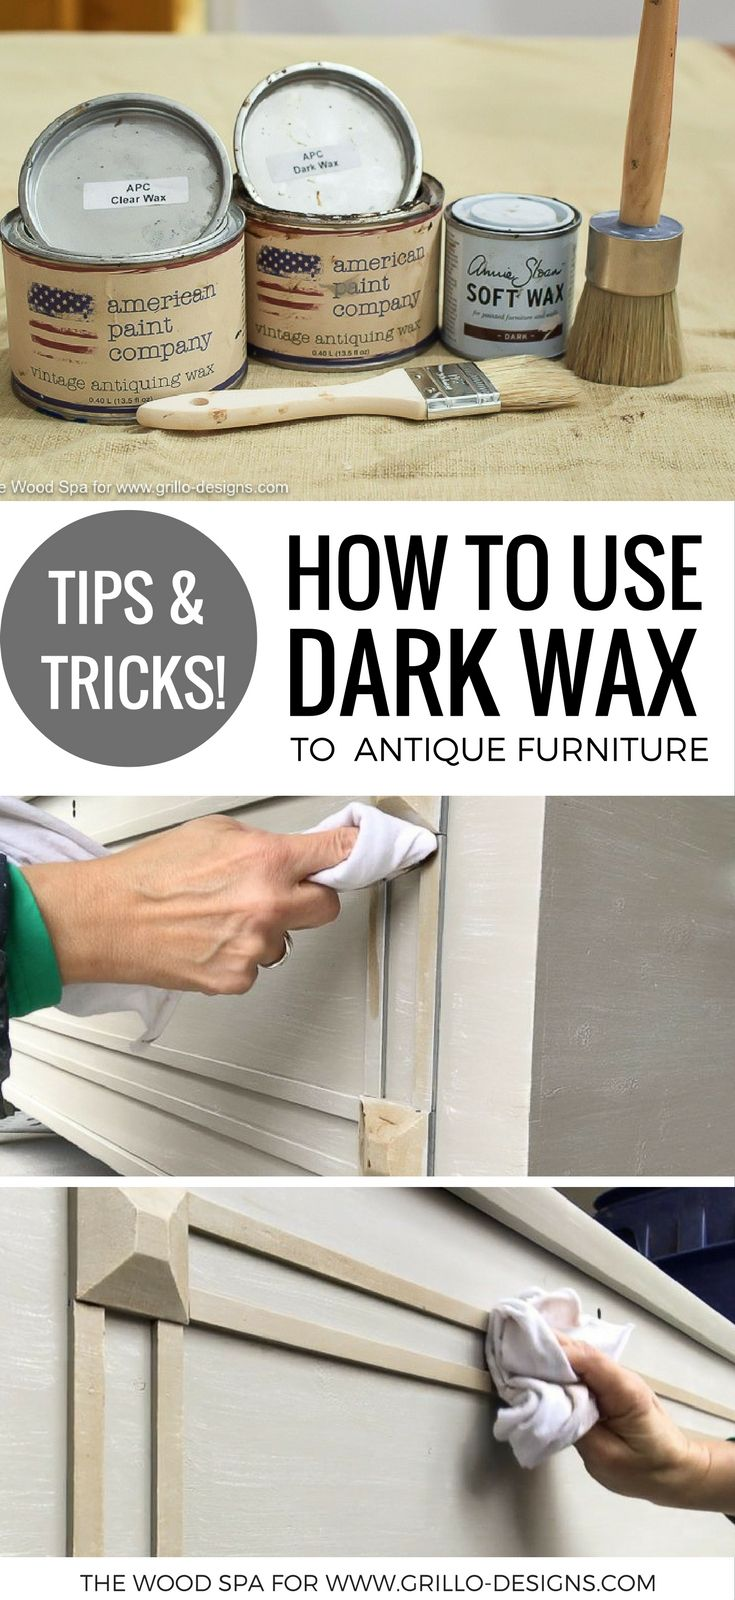 How To Use Dark Wax To Antique Furniture - How To Use Dark Wax To Antique Furniture Dark Wax, Antique